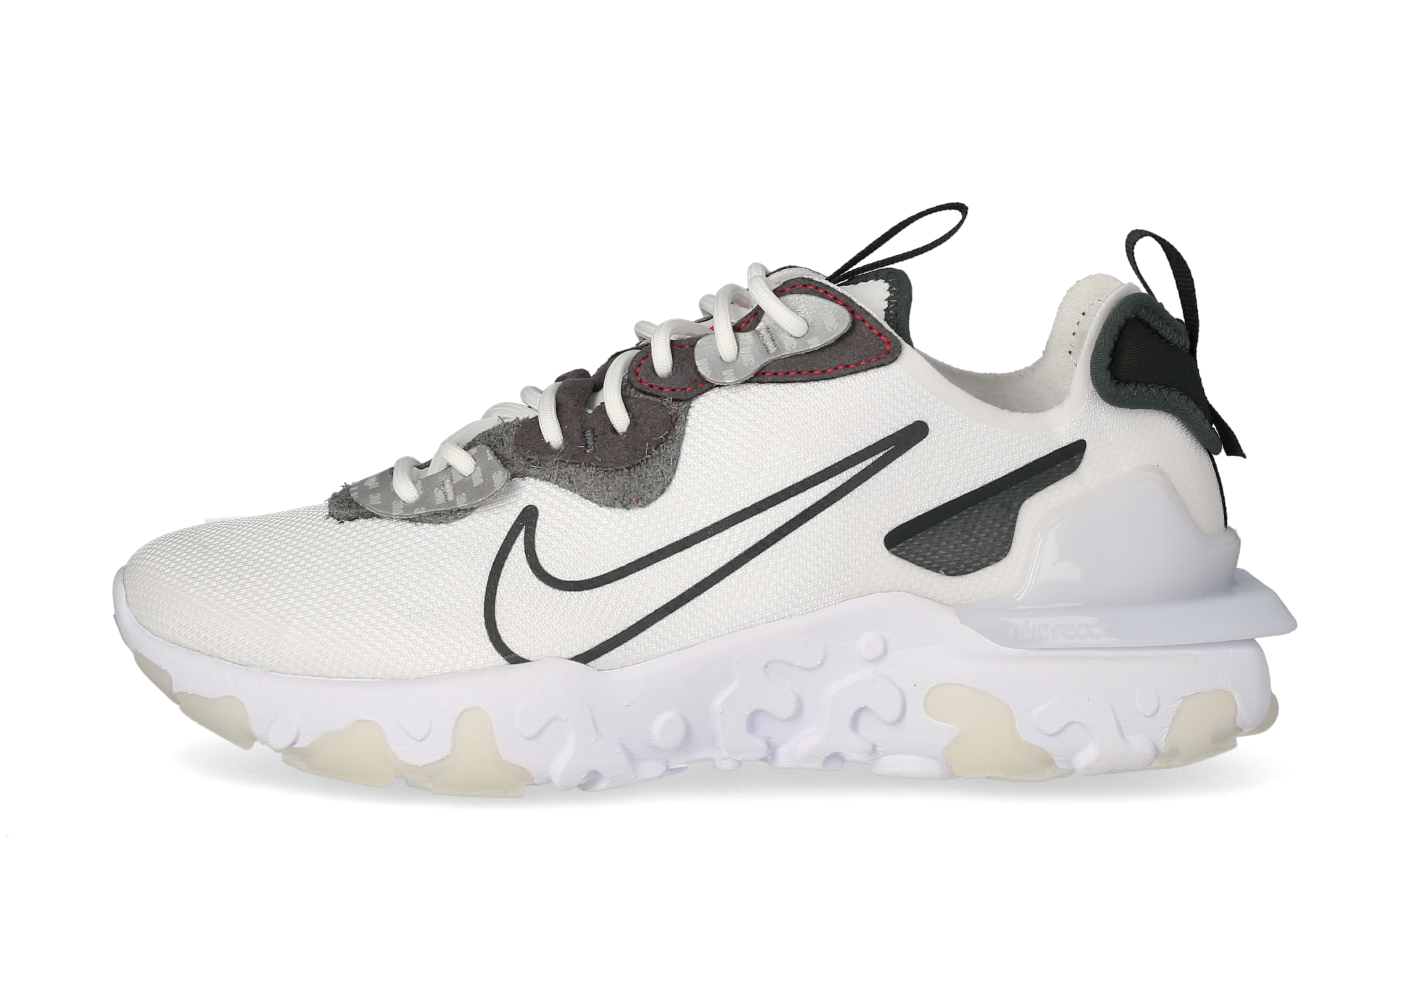 Nike React Vision 3M blanc anthracite - Chaussures Baskets homme ...